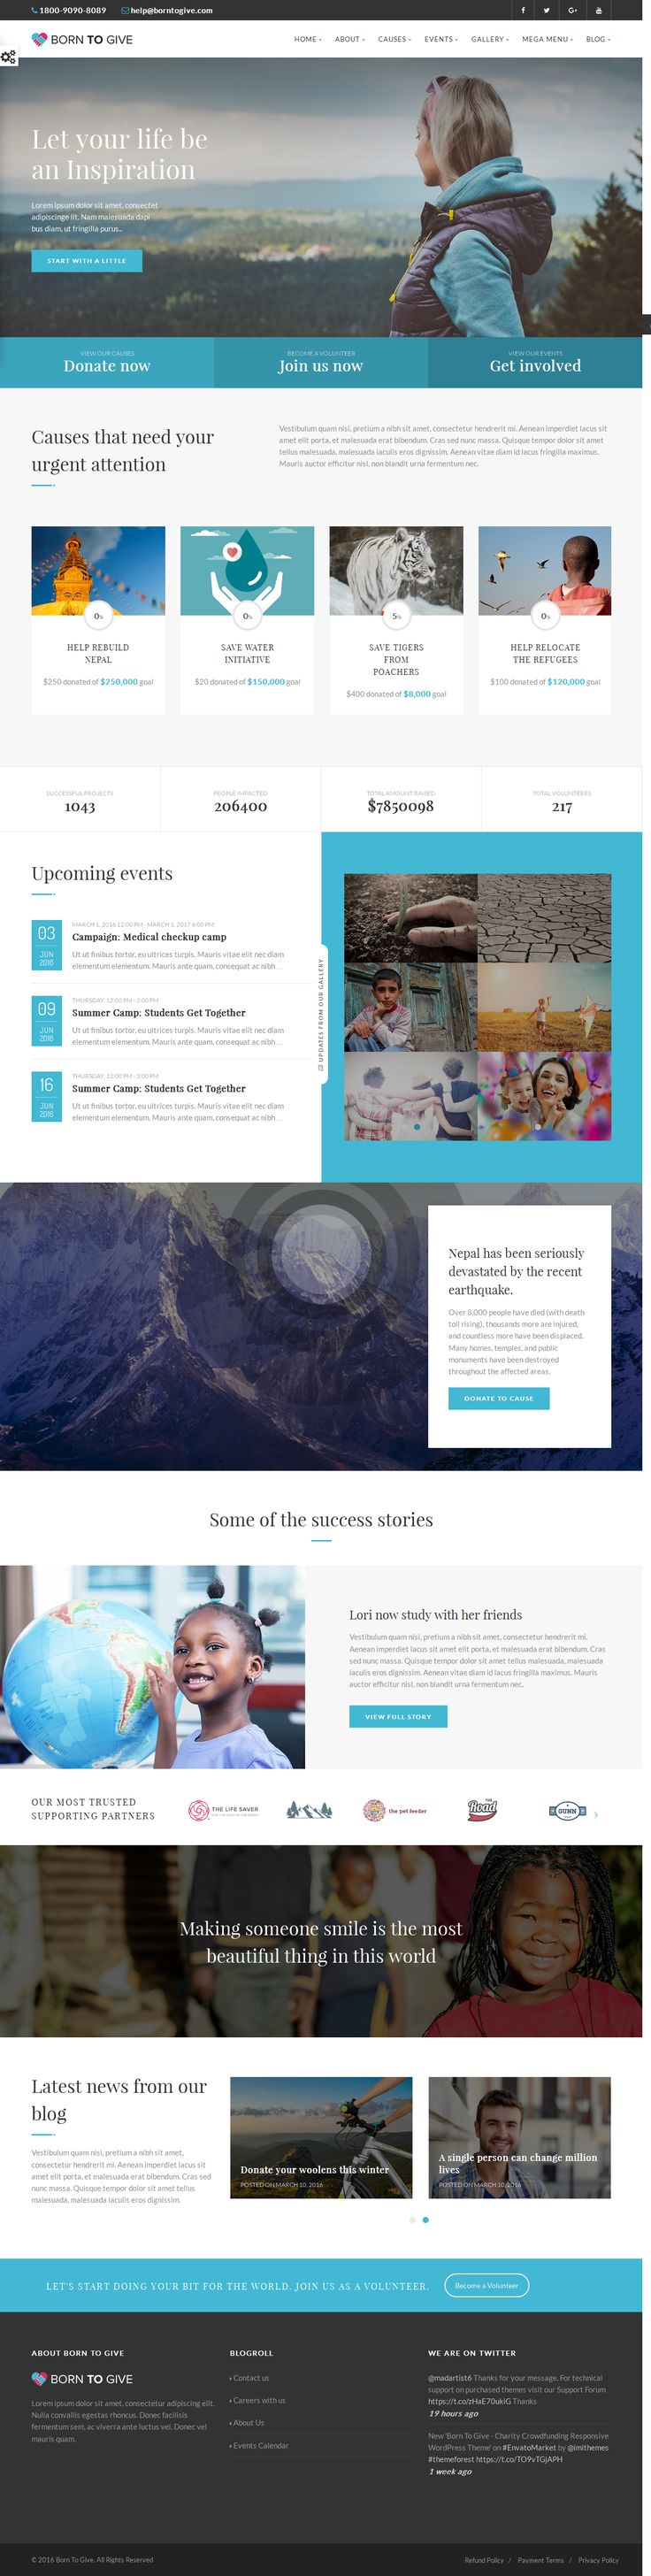 Born to Give is a full functional WordPress Theme designed & developed for #Crowdfunding, #Charity or Non Profit #Websites and comes handy for Corporate Business Websites as well.